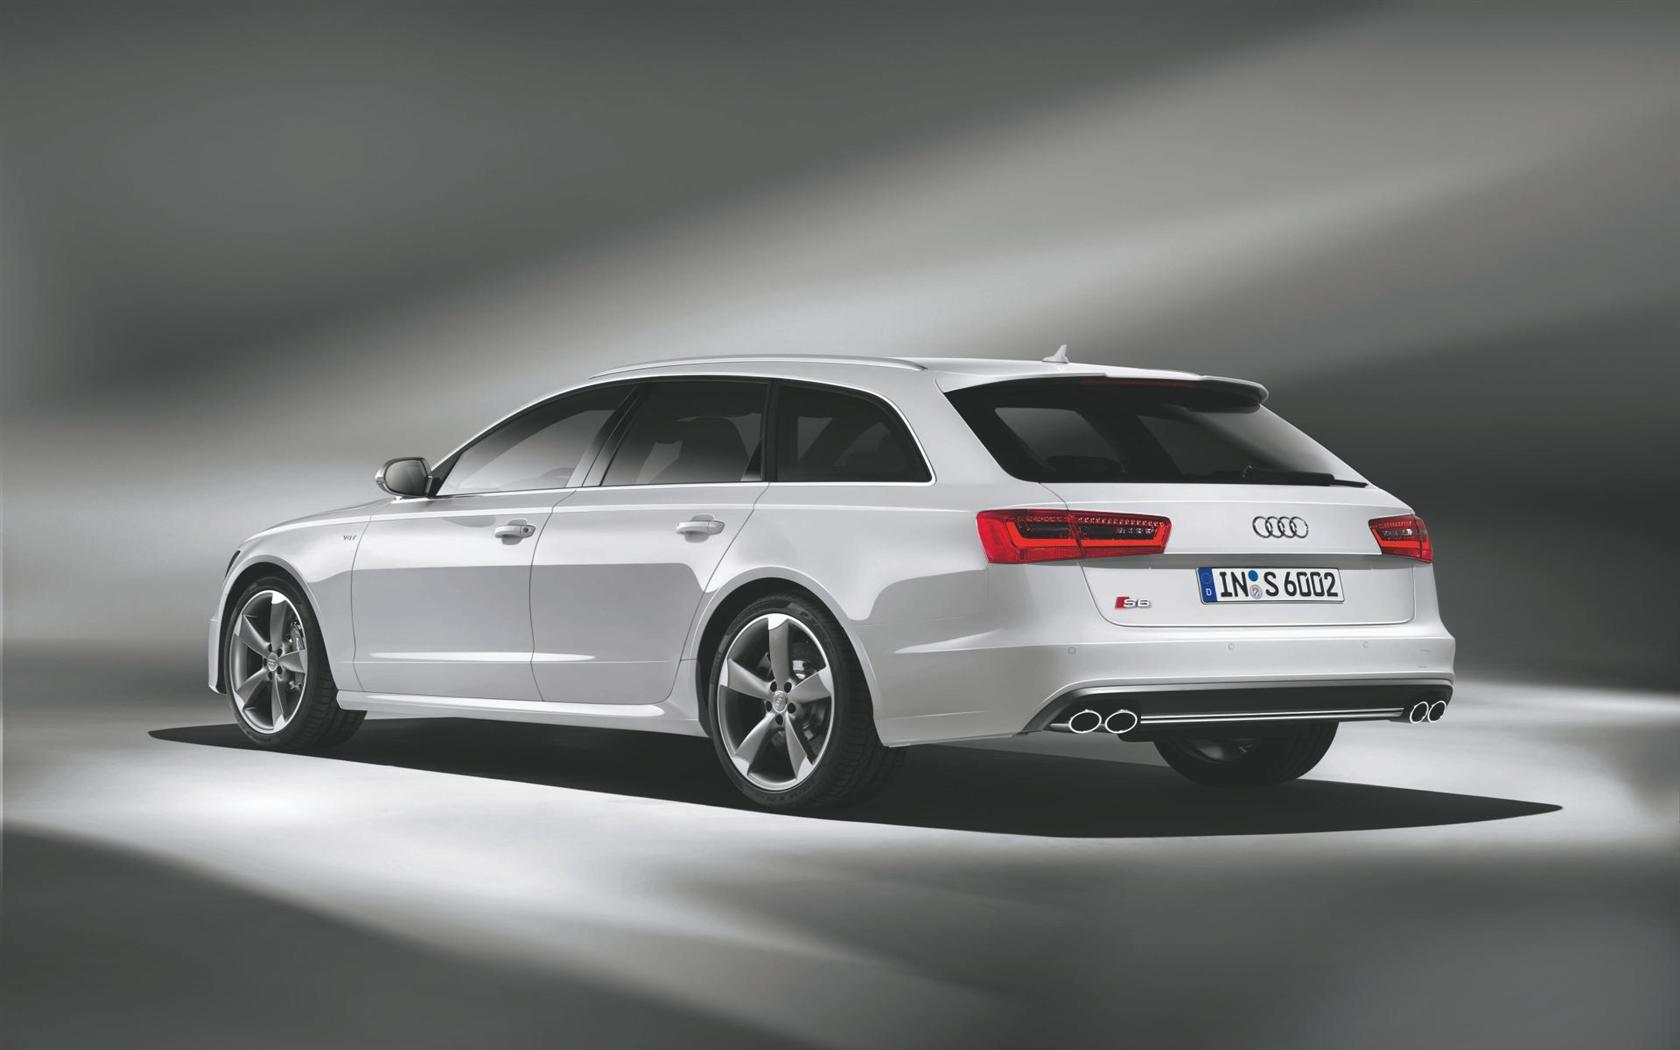 2012 audi s6 avant iii pictures information and specs auto. Black Bedroom Furniture Sets. Home Design Ideas